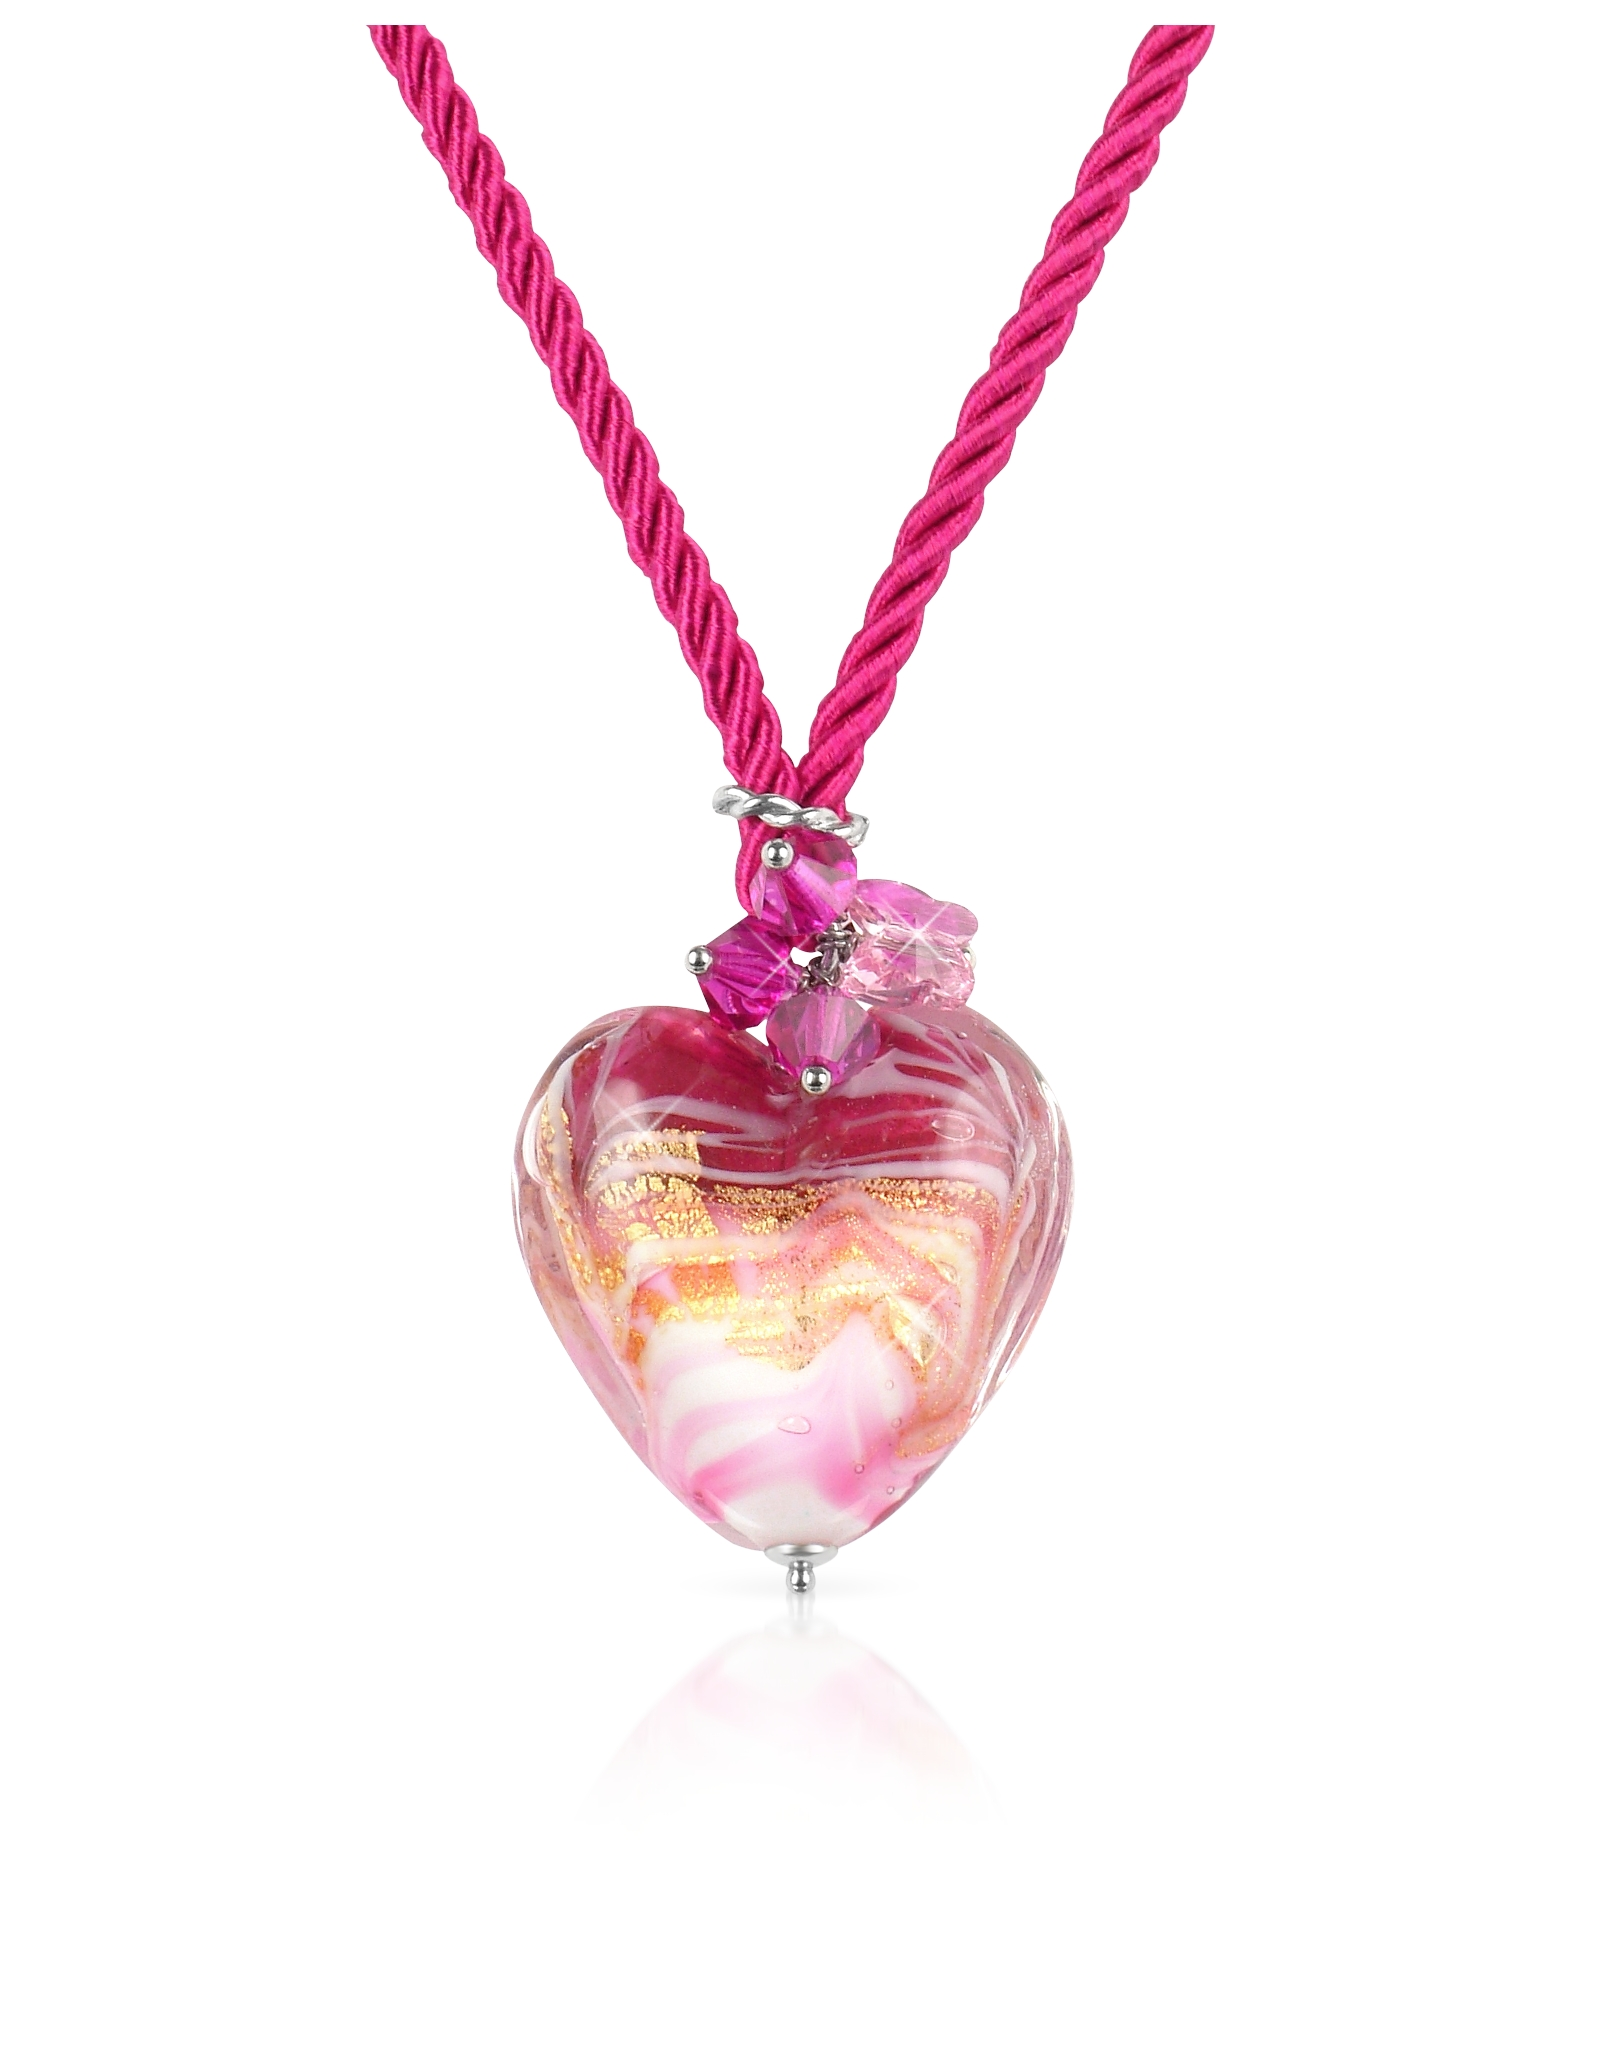 Lyst house of murano mare pink murano glass heart pendant gallery aloadofball Choice Image